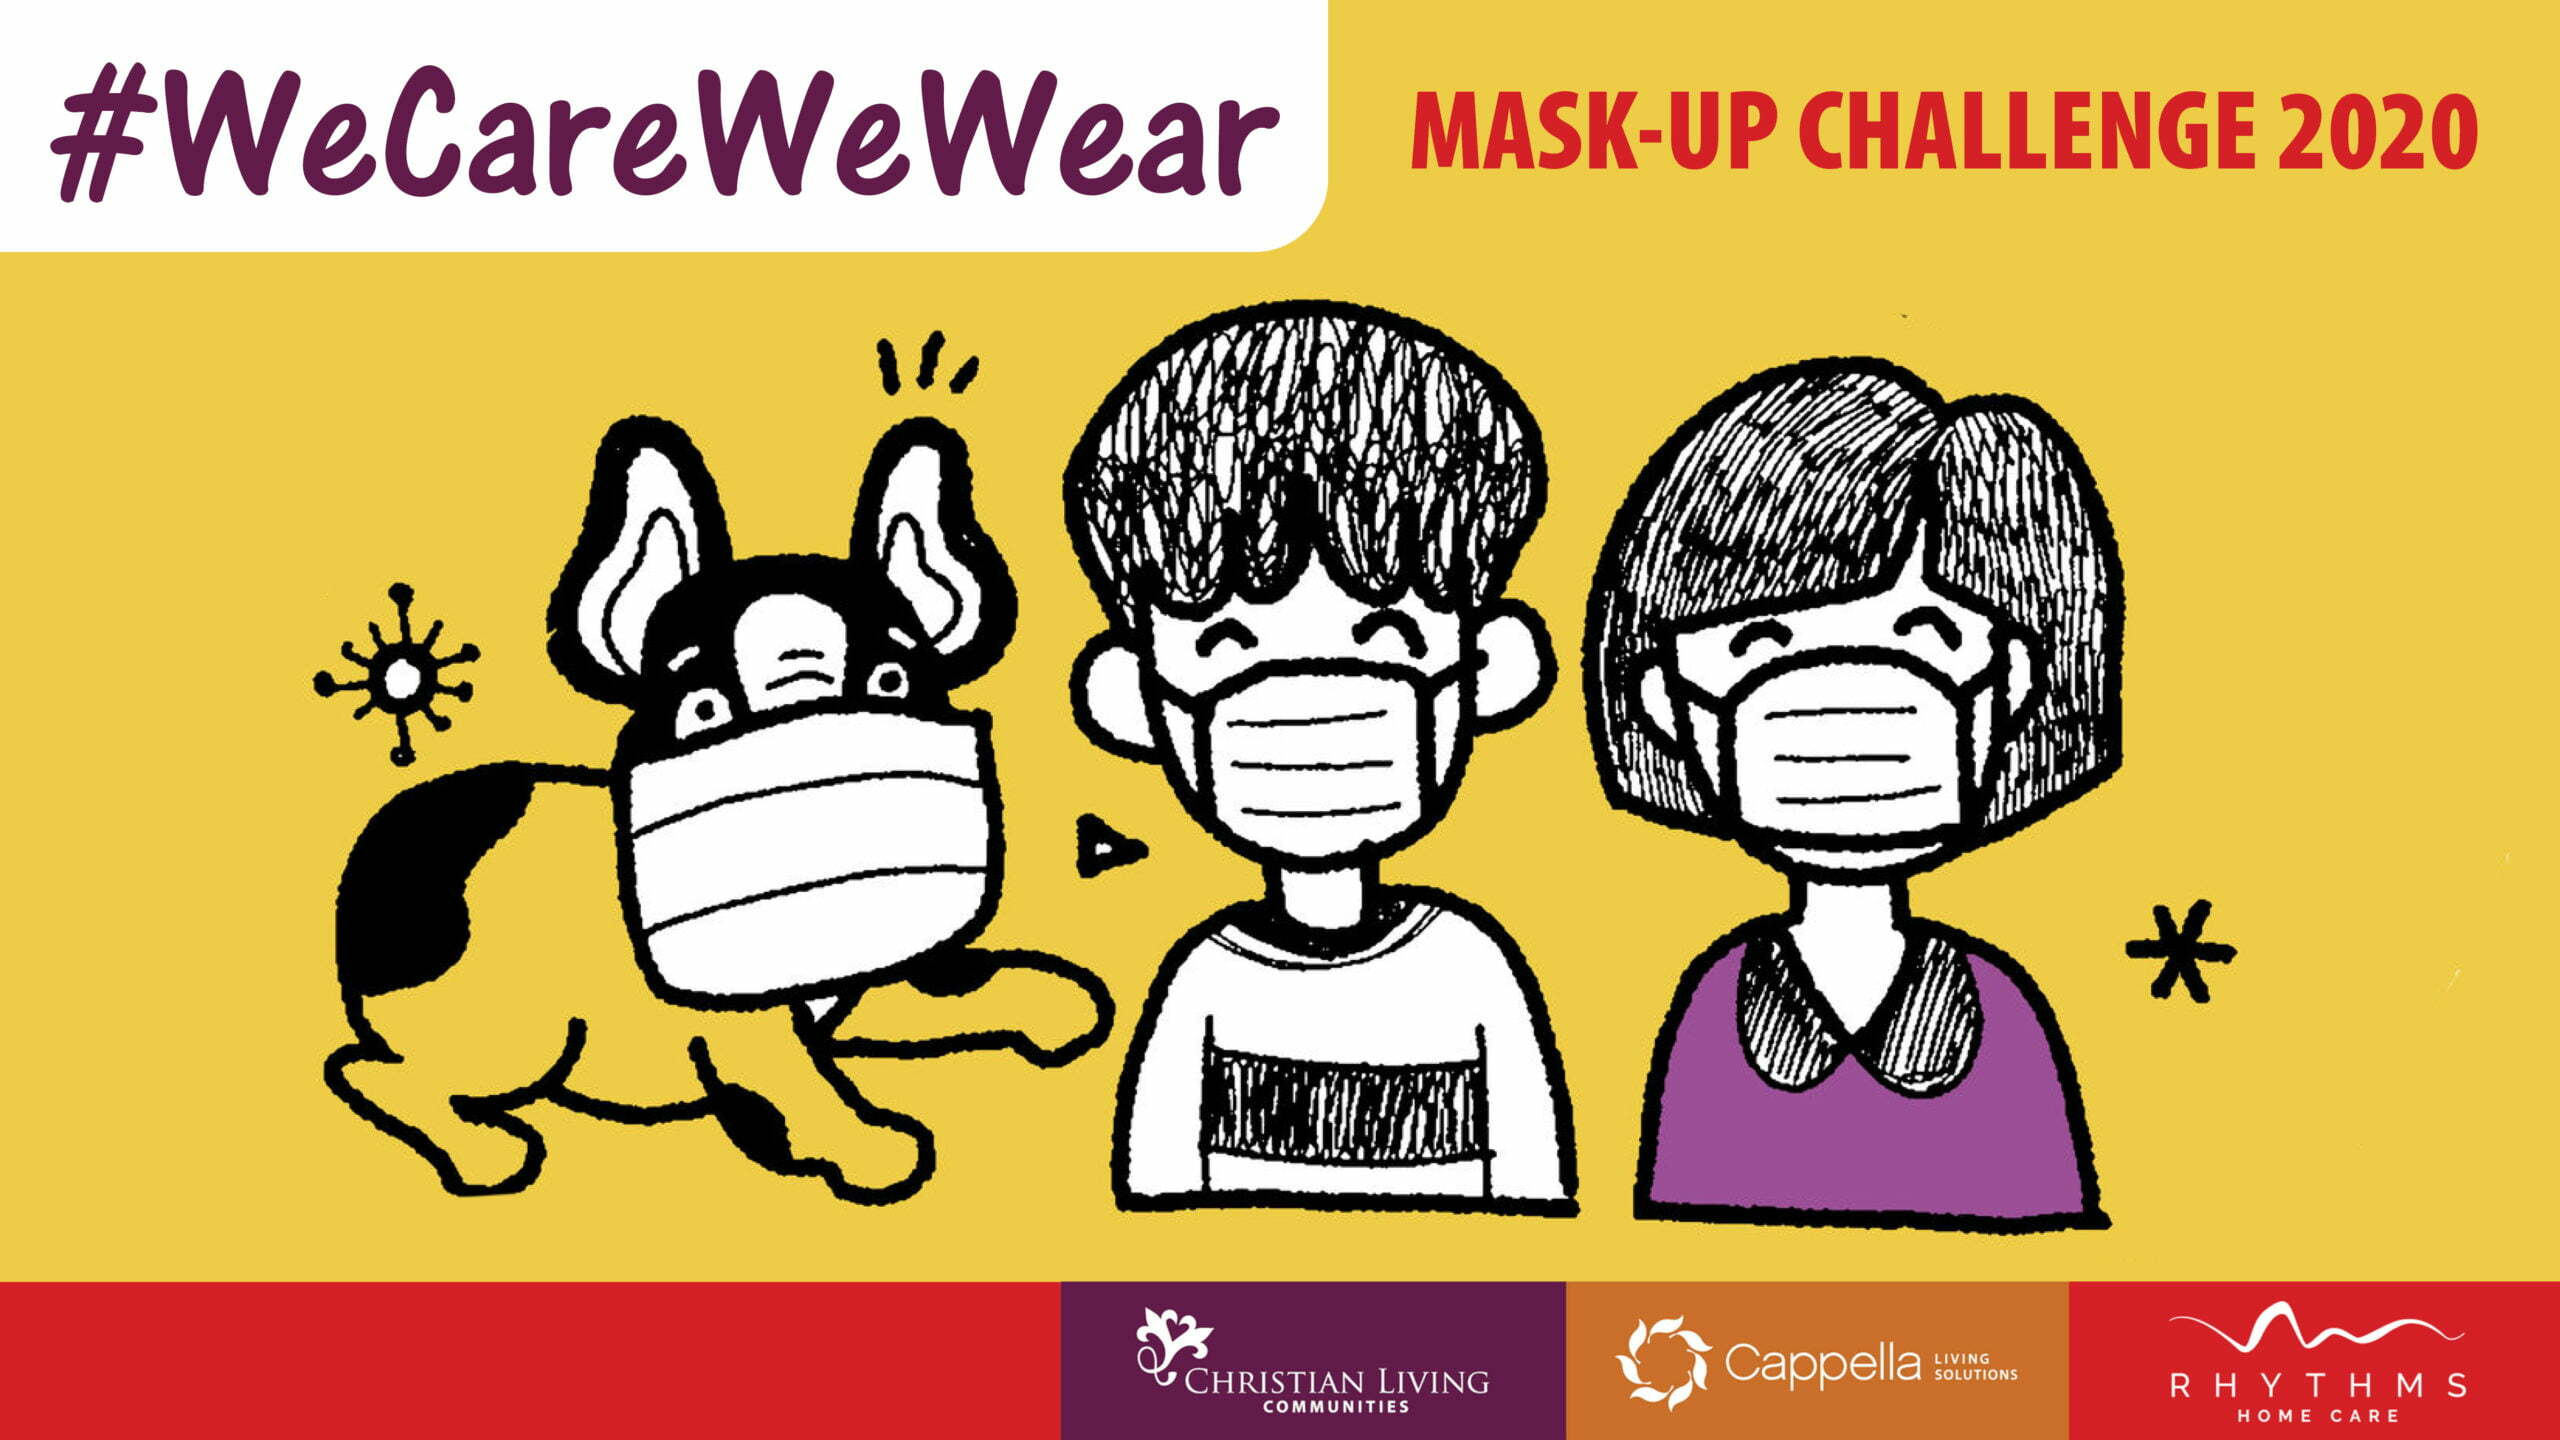 We Care We Wear Mask challenge poster